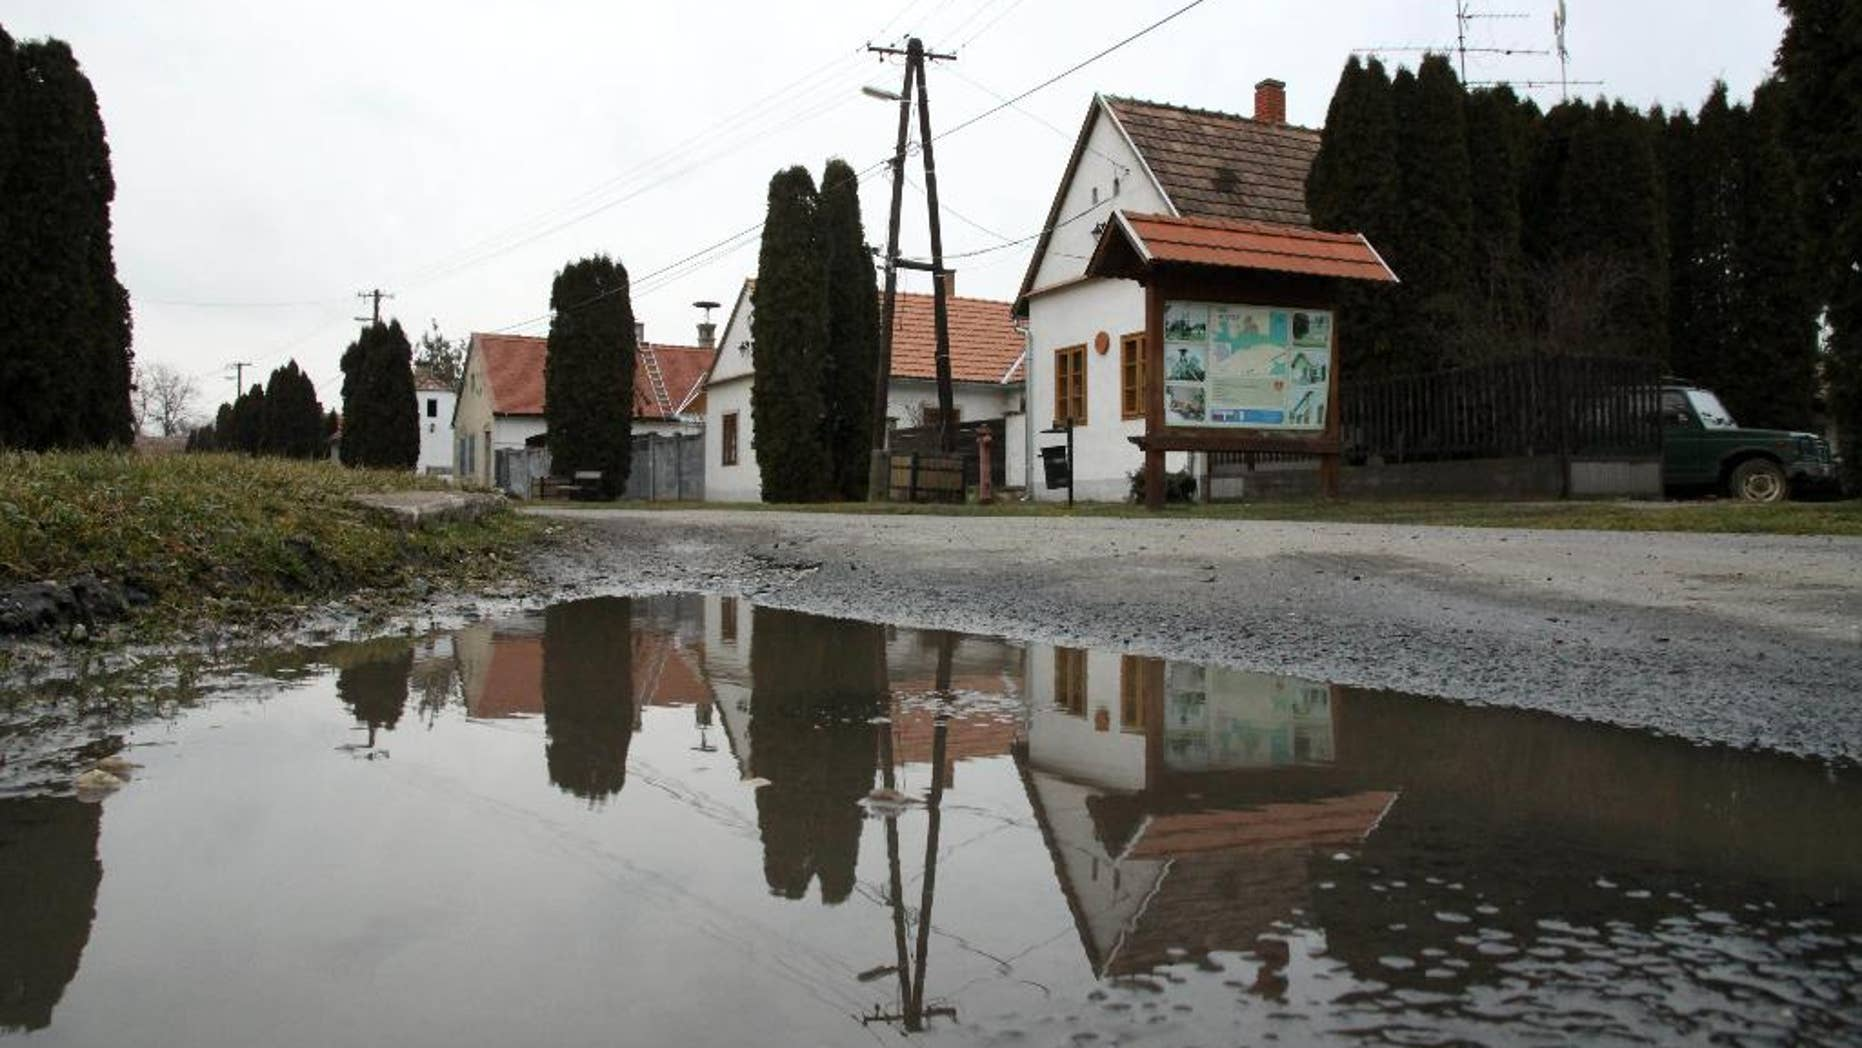 """FILE - In this Wednesday, Feb. 25, 2015 file photo, houses are reflected in a puddle on the main road in the village of Megyer, Veszprem county, 190 kilometers (120 miles) southwest of Budapest, Hungary. Rooms at Hungary's village-for-rent are going fast. Over 300 inquiries and reservations for 280 guests have been made since Mayor Kristof Pajer last week began advertising the village of Megyer, available for 210,000 forints ($760; 690 euros) a day. Pajer said Thursday, March 5, 2015,  tourists are coming from as far away as Australia, South Africa, Sweden and the United States and the village """"is booked solid in August and most of April and May."""" (AP Photo/MTI, Lajos Nagy, File)"""